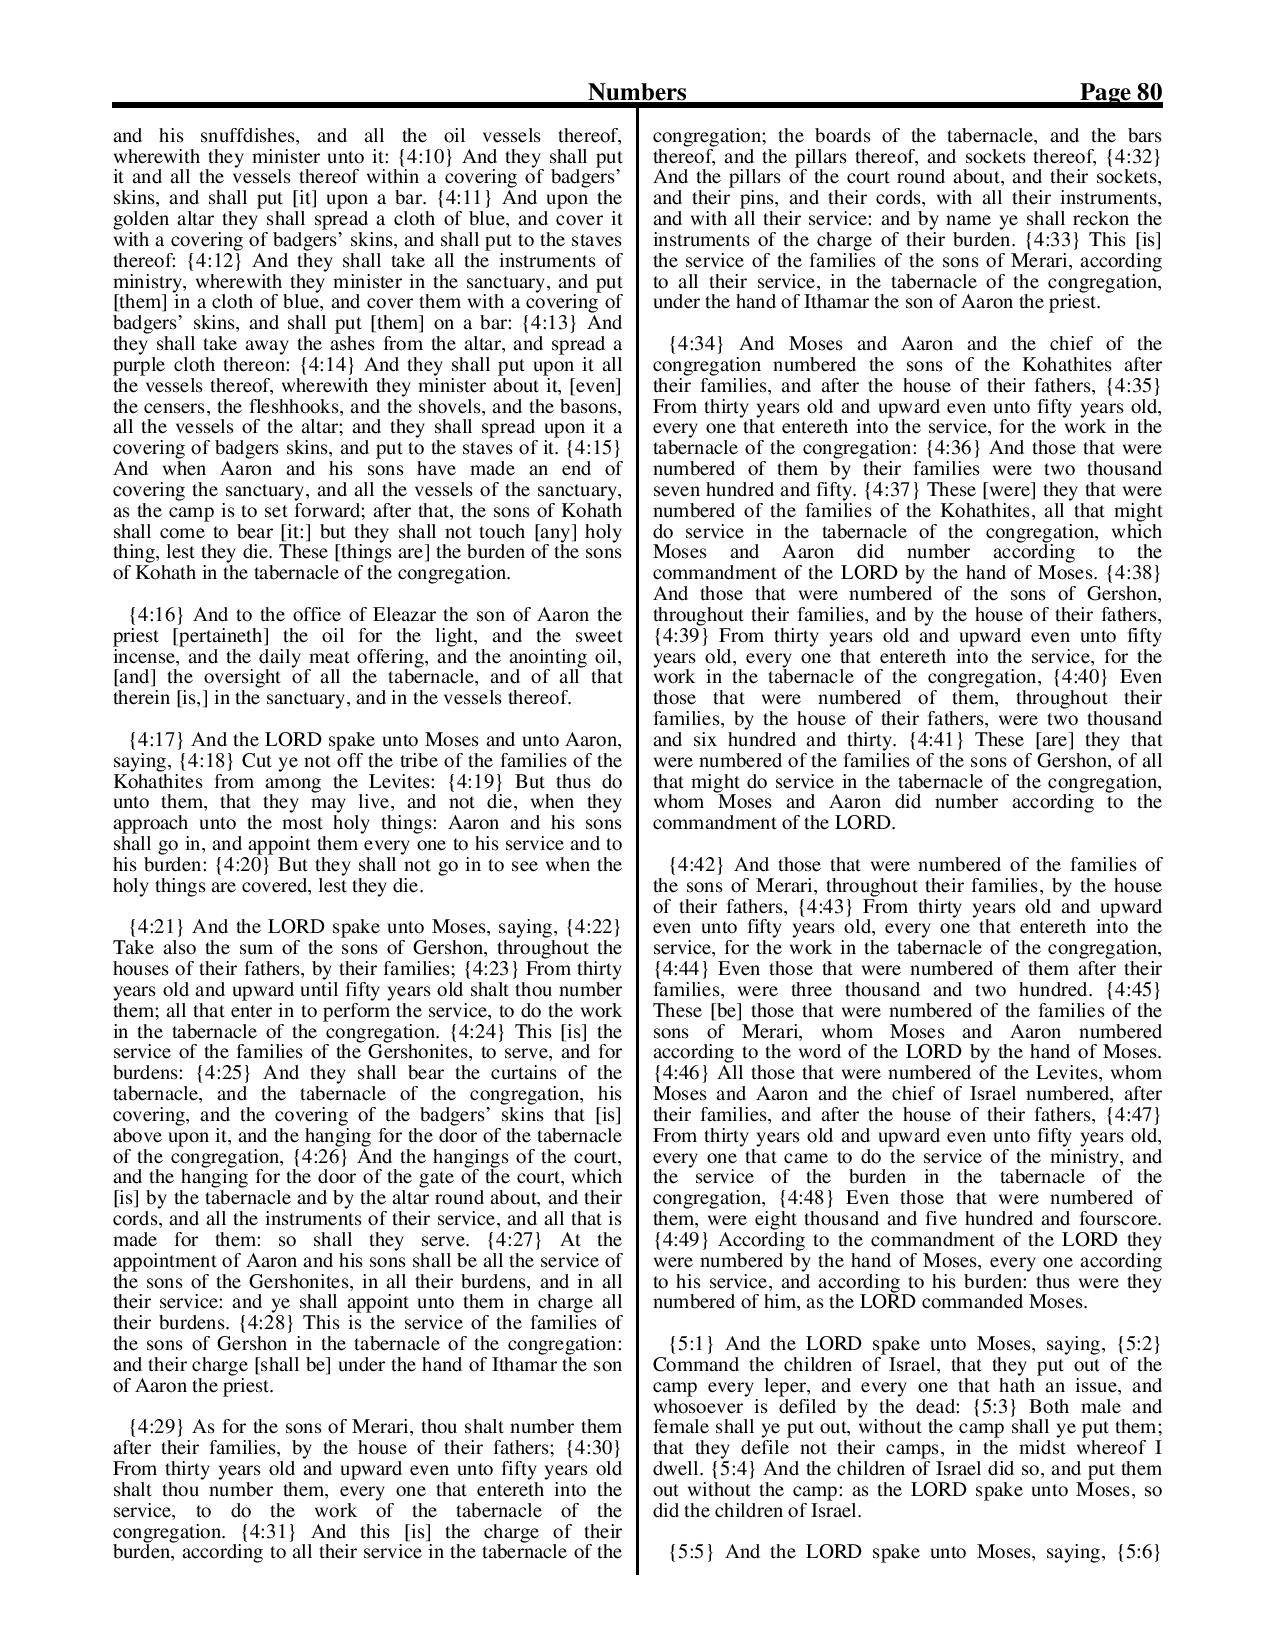 King-James-Bible-KJV-Bible-PDF-page-101